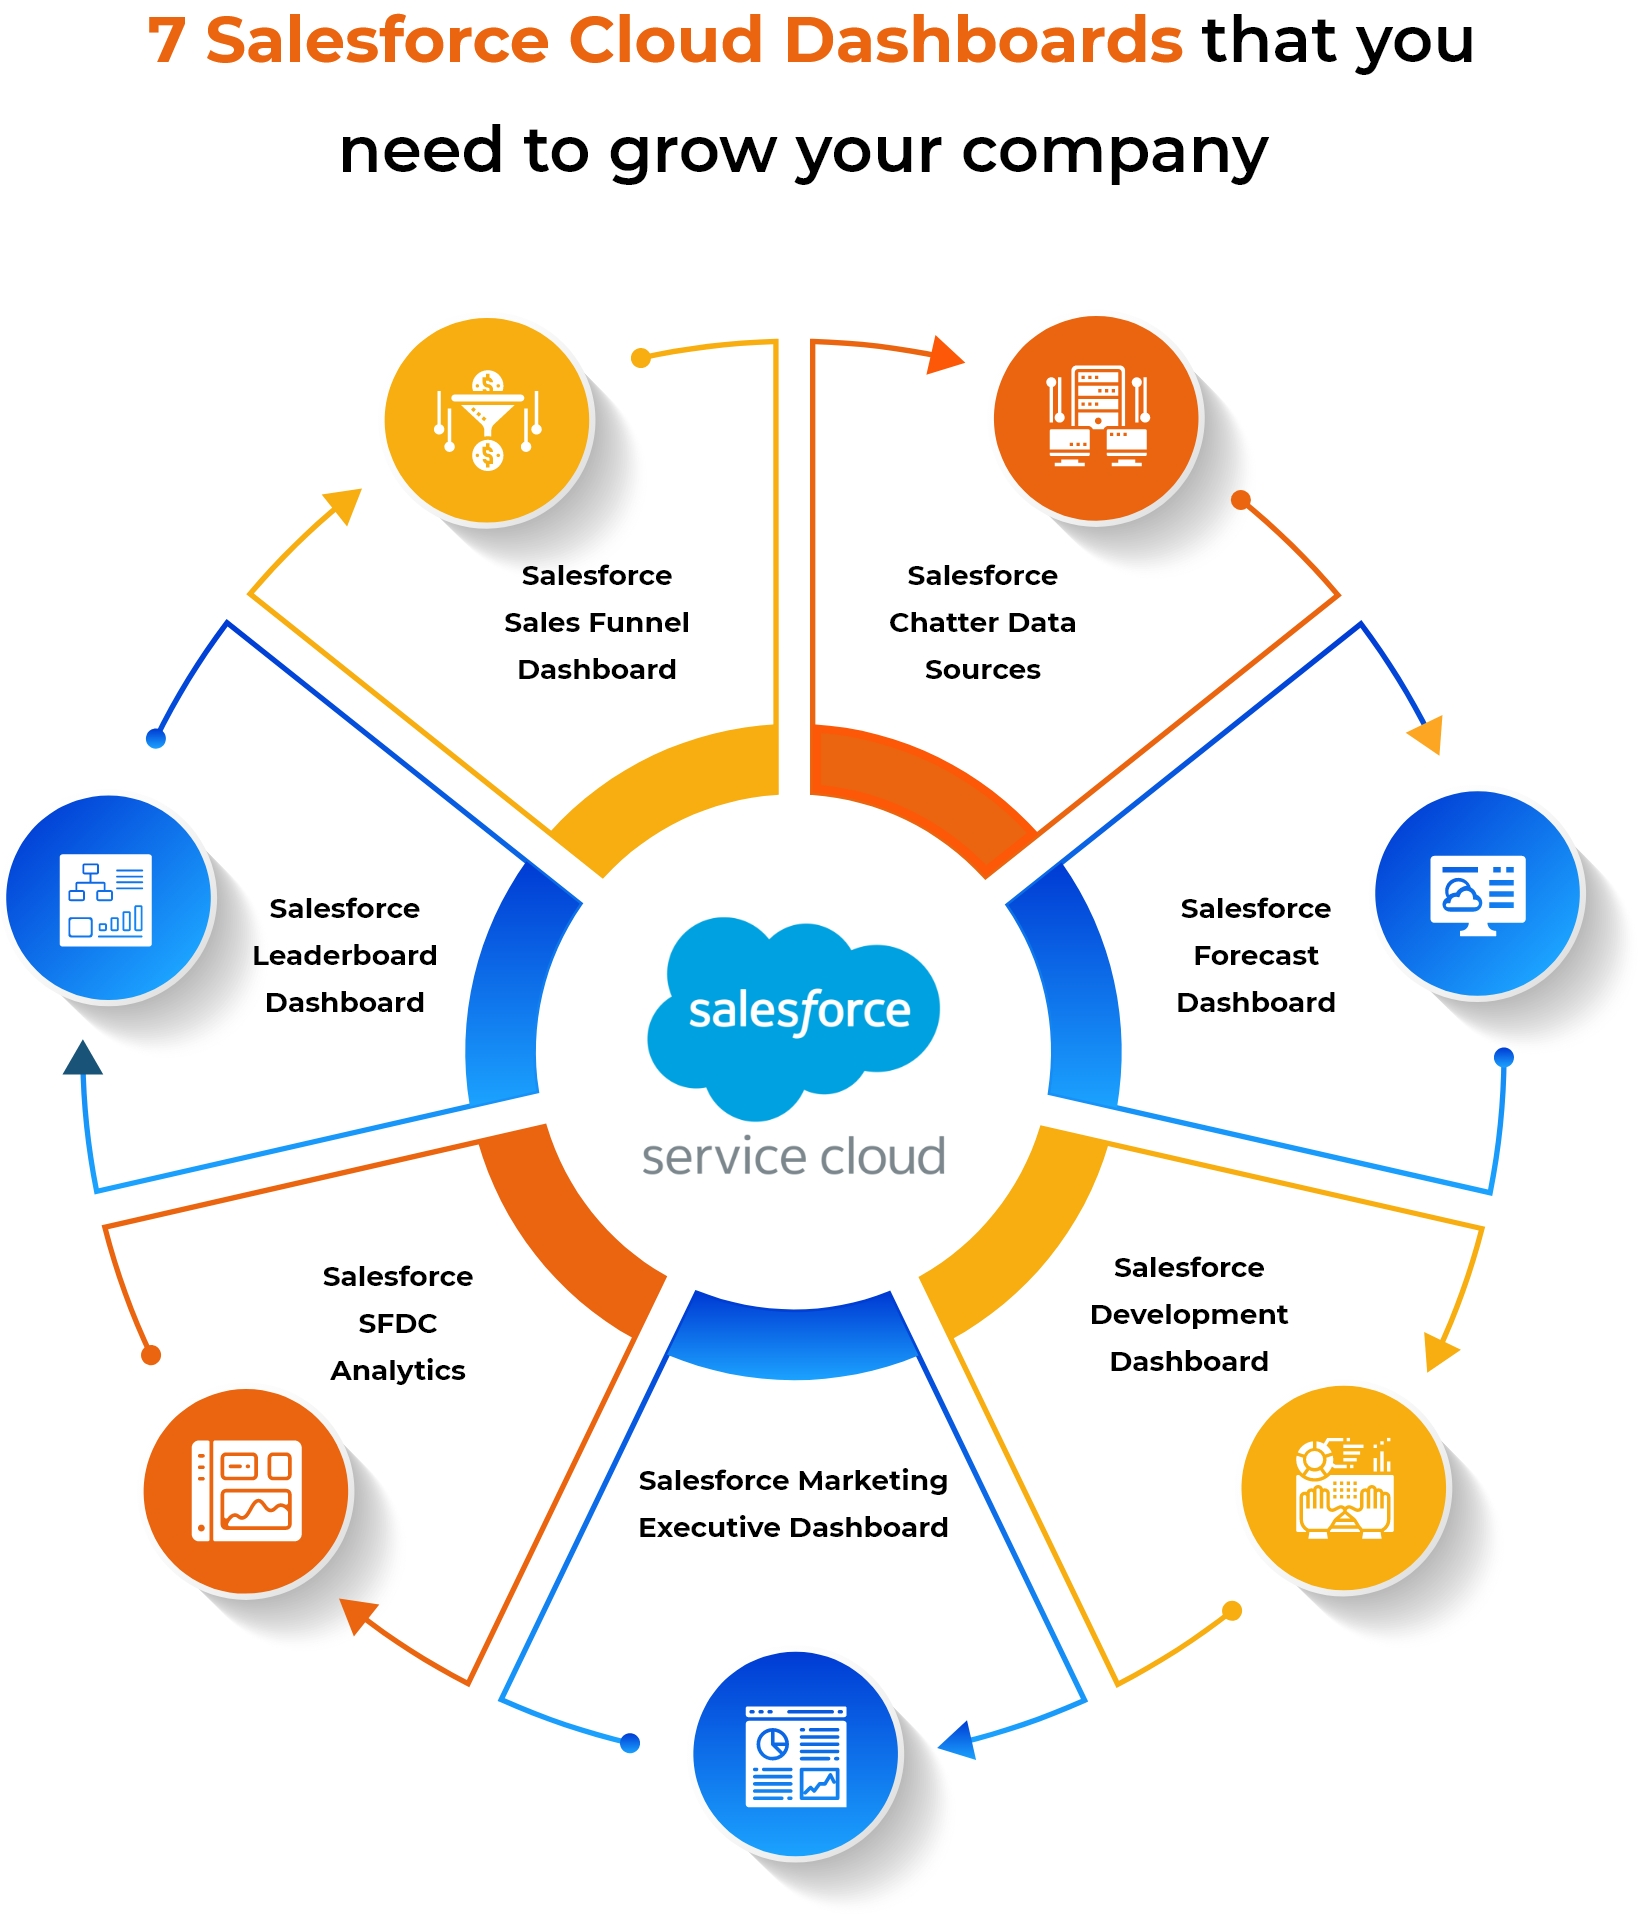 Salesforce Cloud Dashboards Infographic